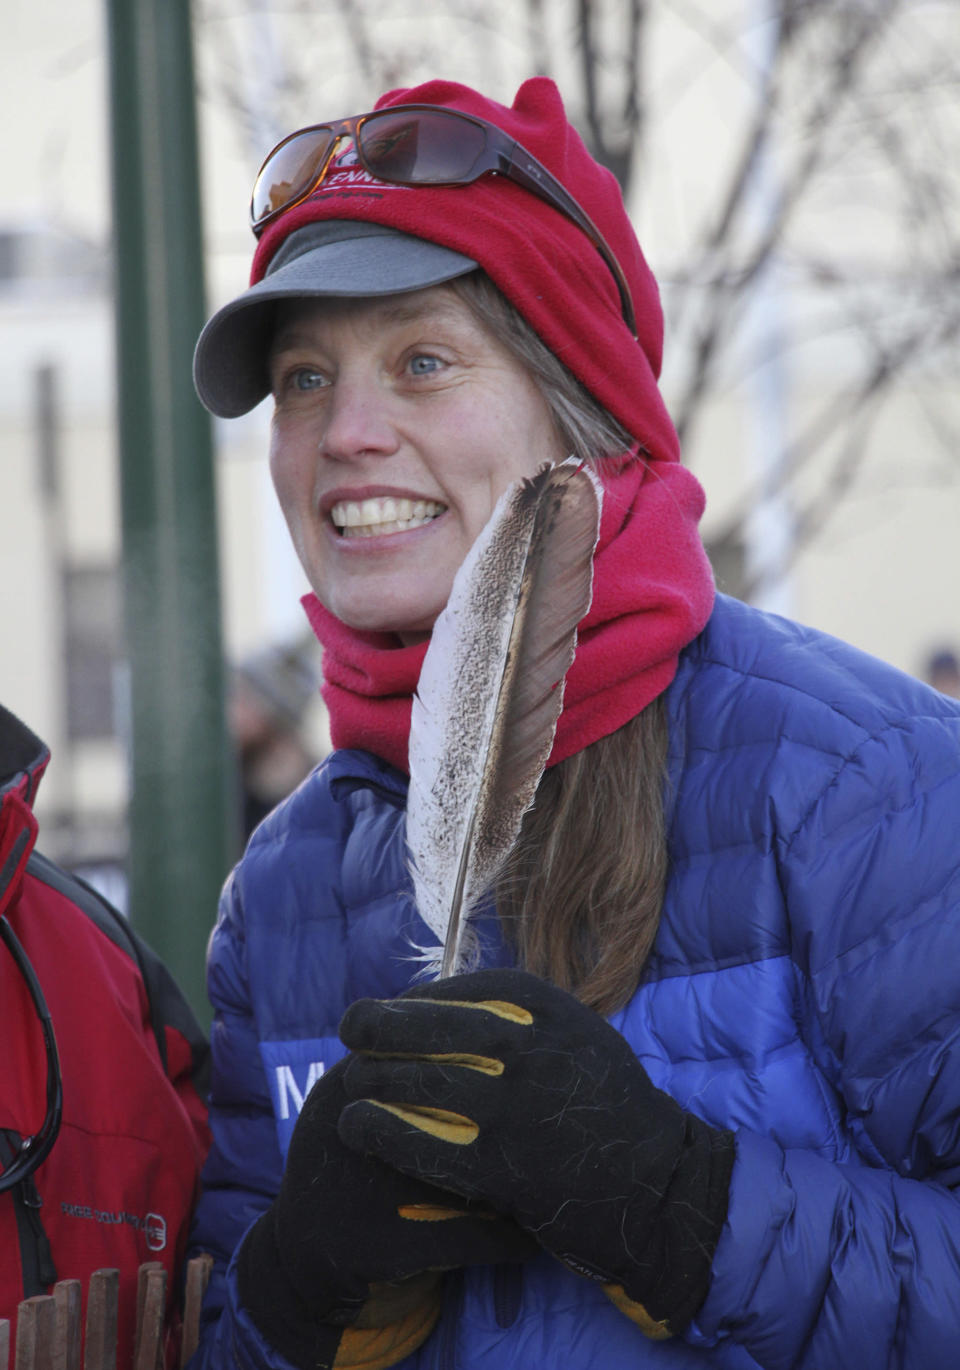 FILE - In this Saturday, March 2, 2019, file photo, musher Aliy Zirkle, holds a feather given to her as a gift by a fan at the ceremonial start of the Iditarod Trail Sled Dog Race in Anchorage, Alaska. Zirkle says she will retire after this year's race, her 21st. She made the announcement on her webpage, Friday, Feb. 12, 2021. She says the race has always been a spectacular adventure, but it's been physically and mentally demanding. (AP Photo/Mark Thiessen,File)